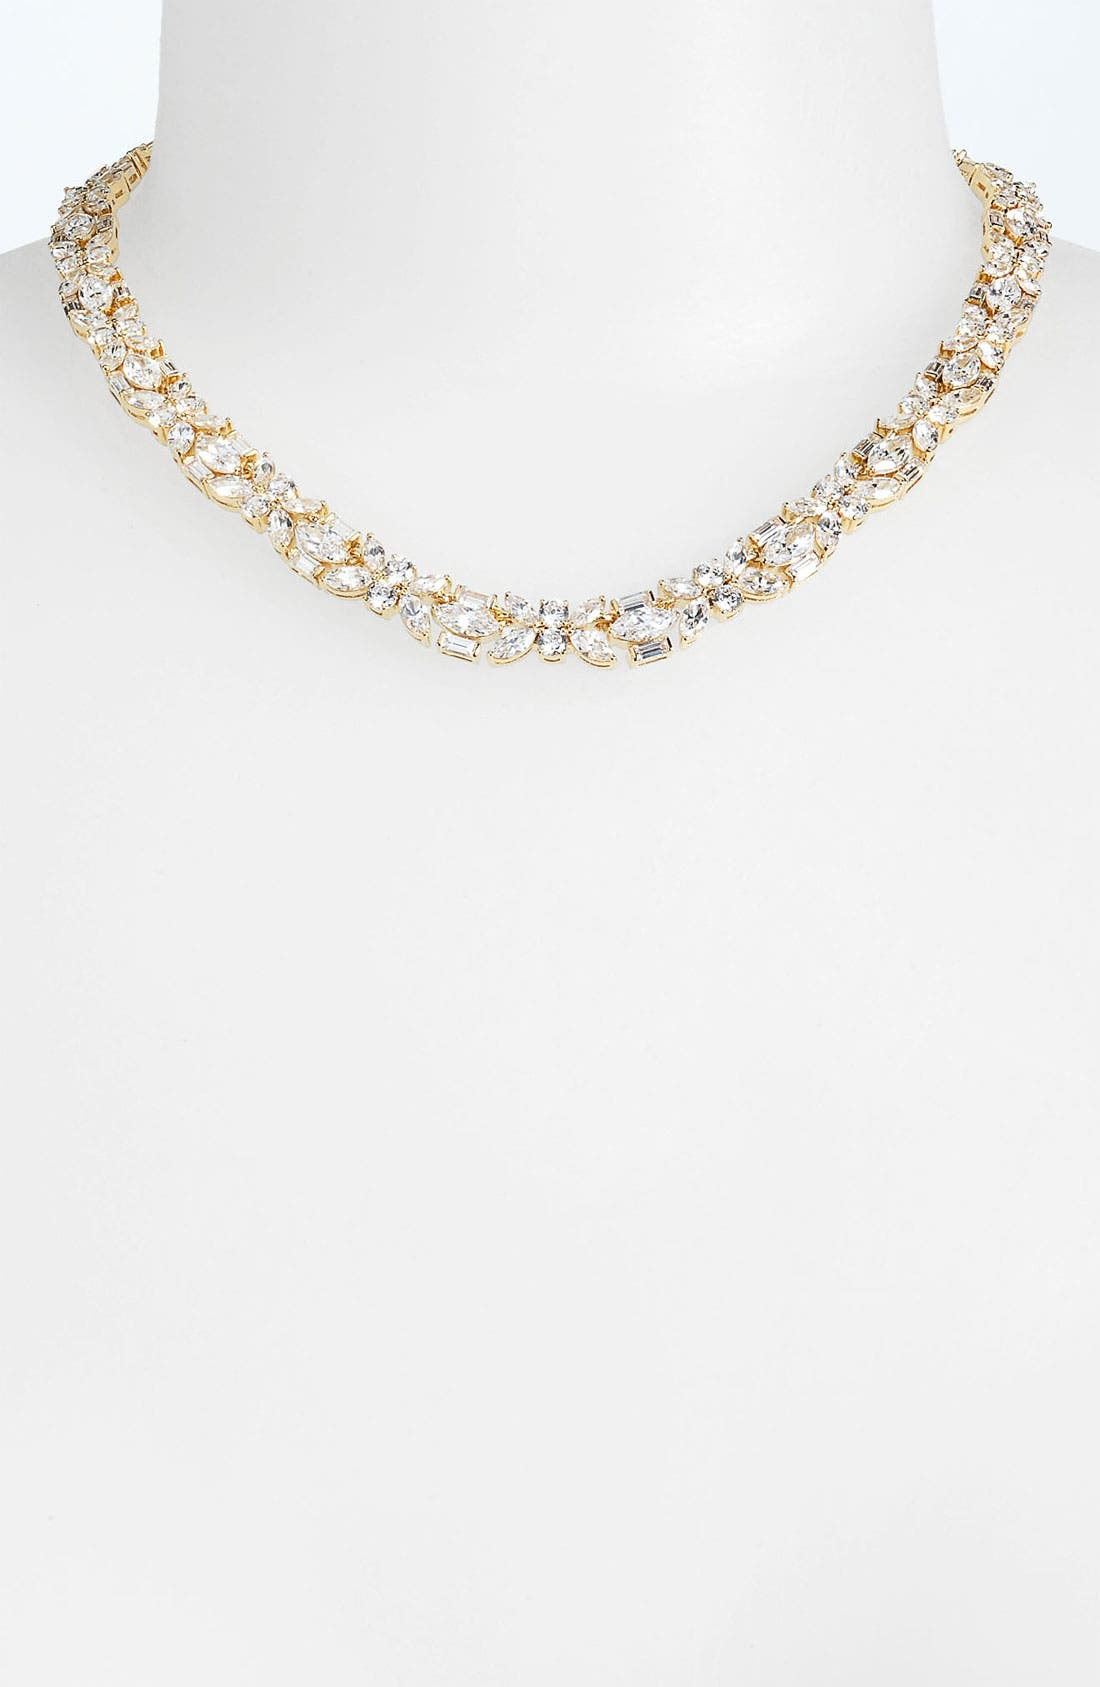 Alternate Image 1 Selected - Nadri Cubic Zirconia Cluster Collar Necklace (Nordstrom Exclusive)